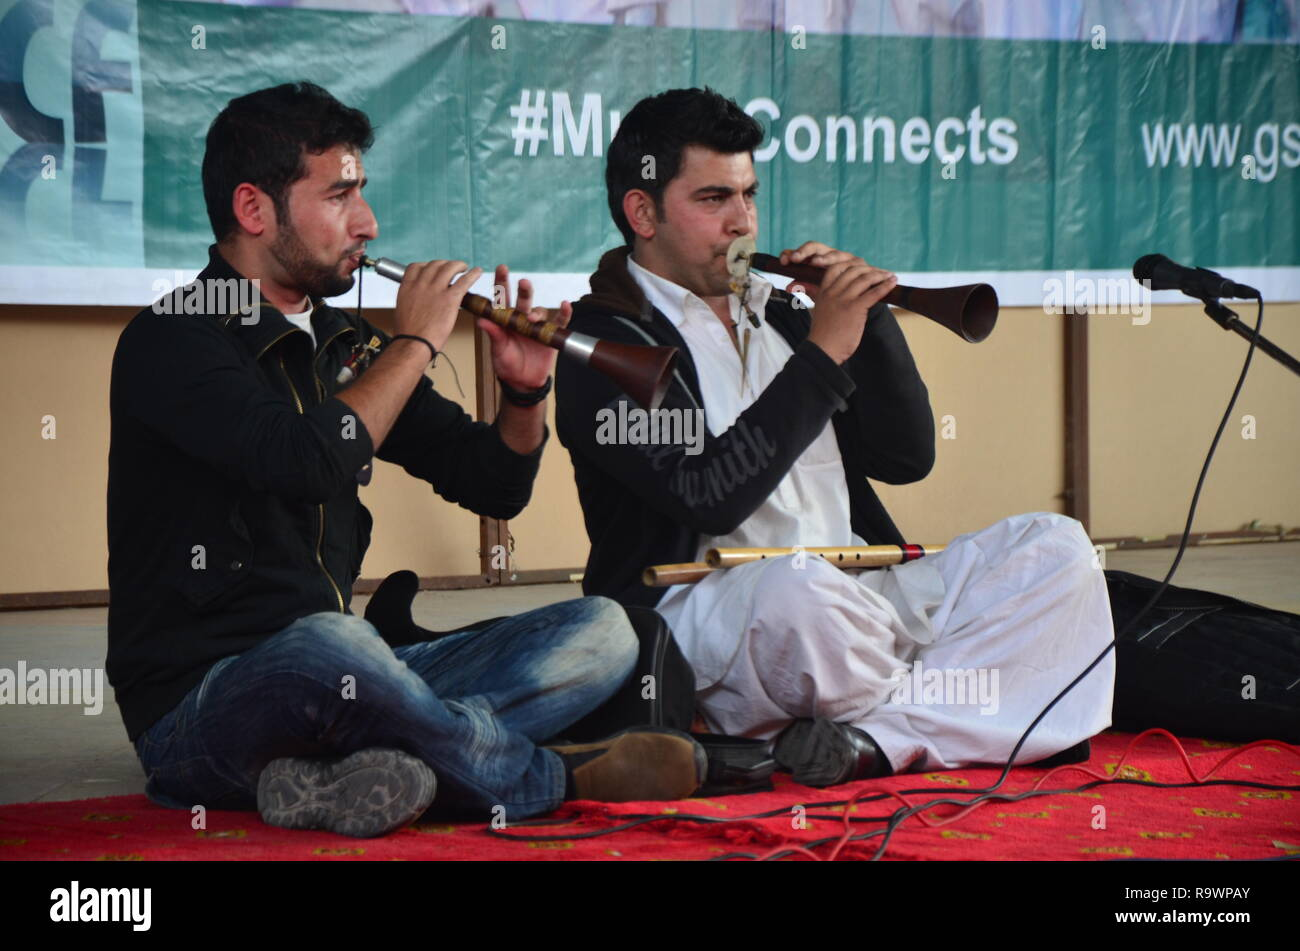 Two musicians play traditional flutes from gilgit baltistant region in north pakistan. - Stock Image